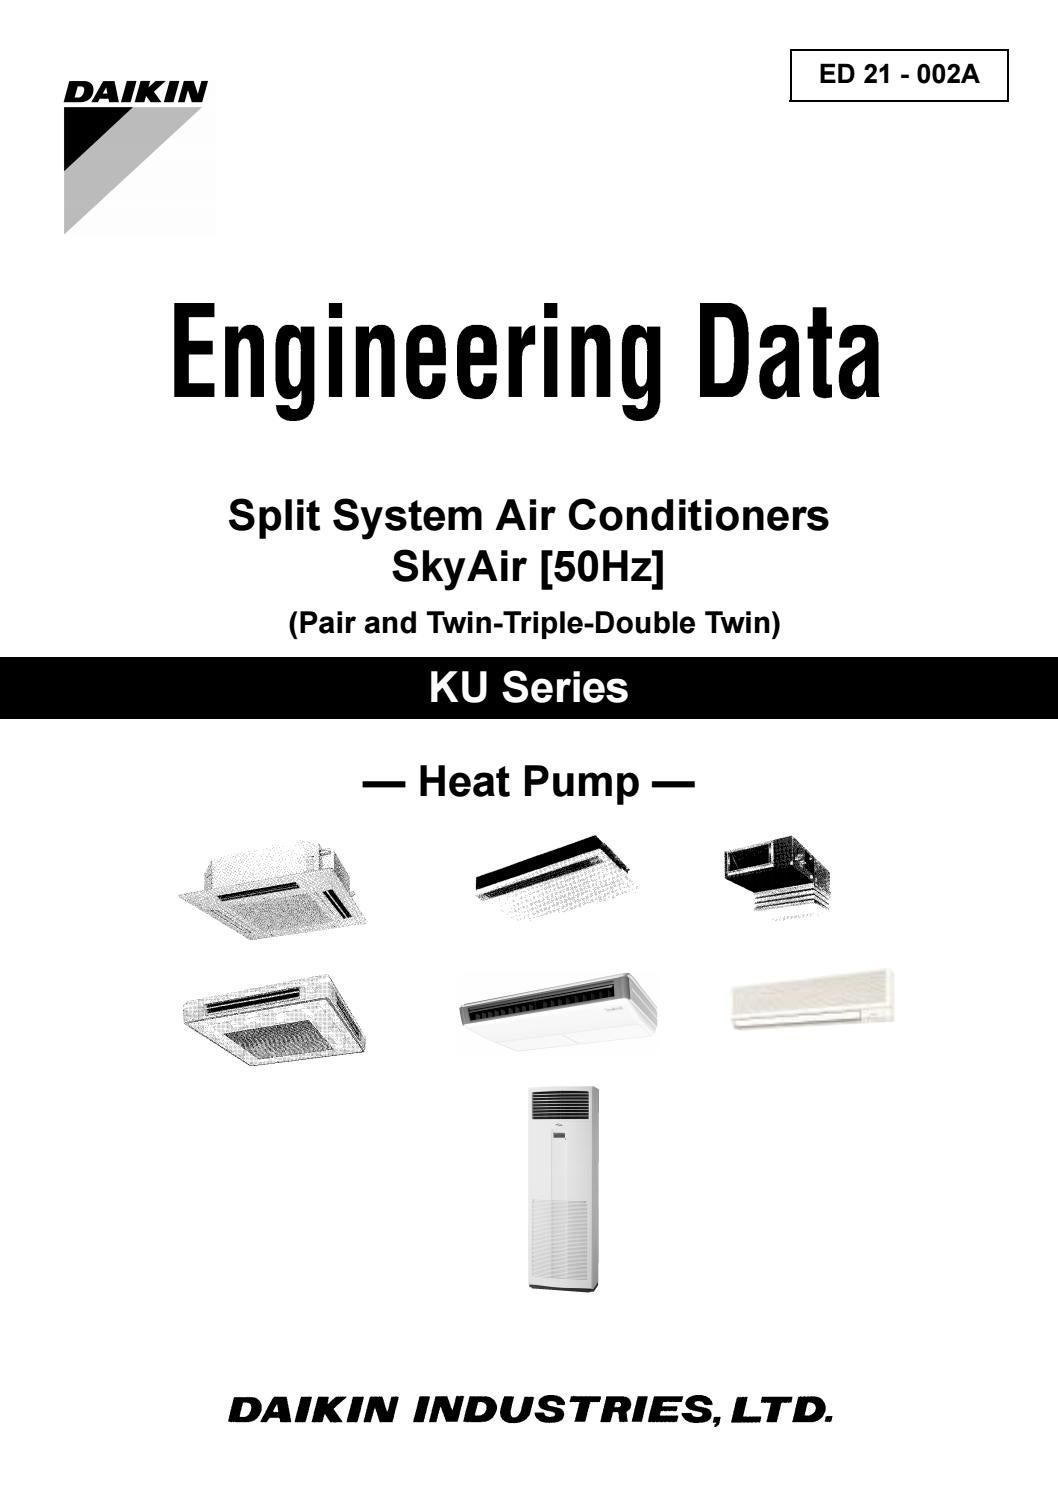 Daikin engineering data split ,skyair ku (fhyc kve,fhy bve